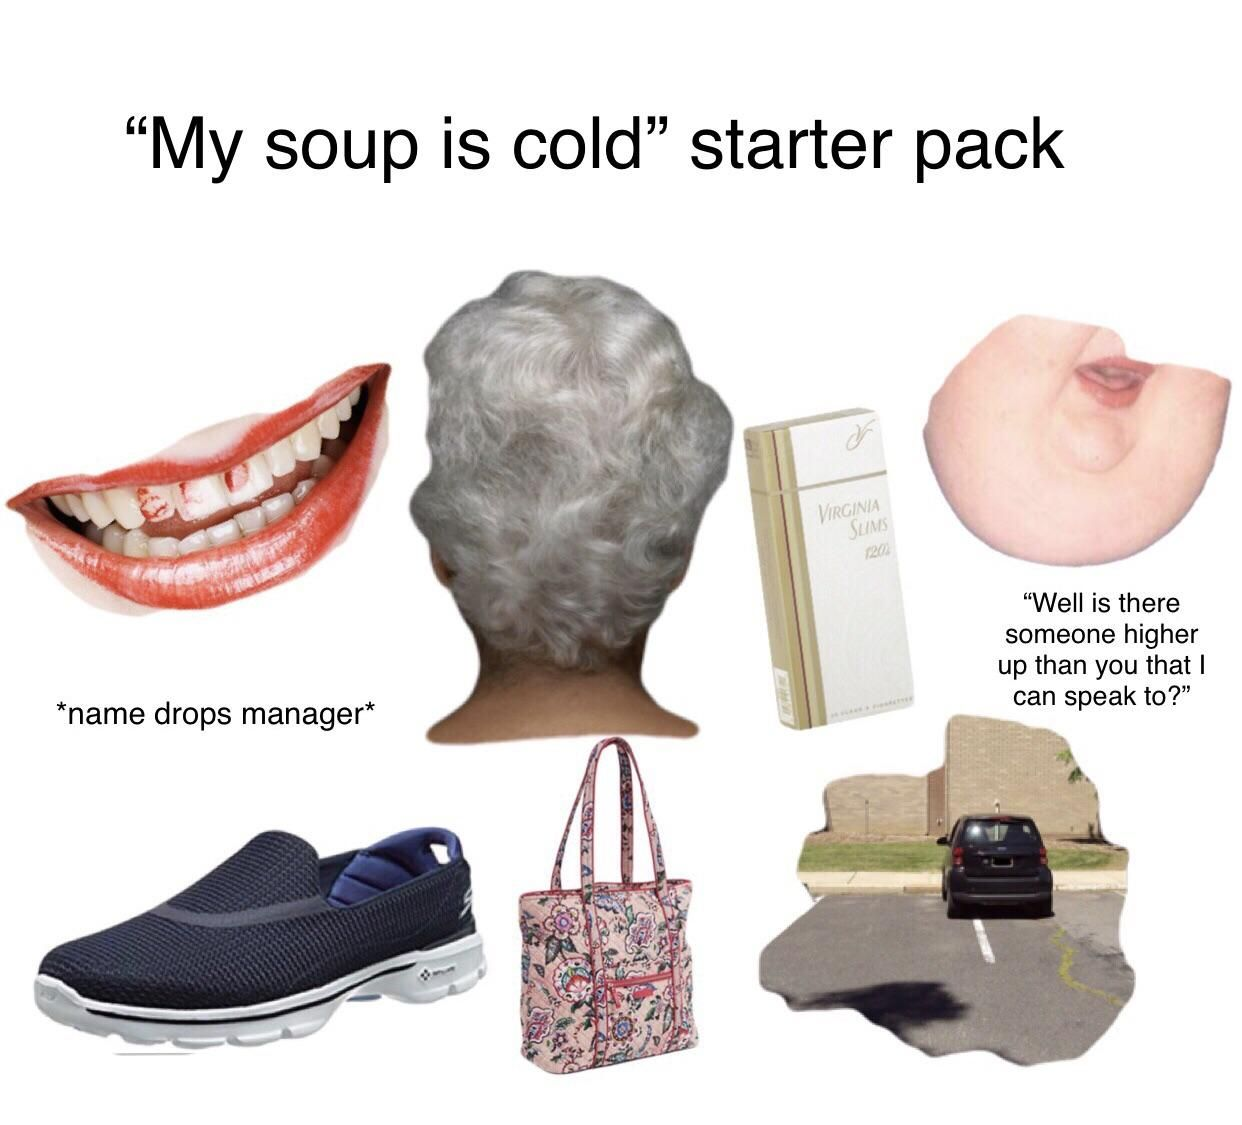 My soup is cold starter pack Funny starter packs